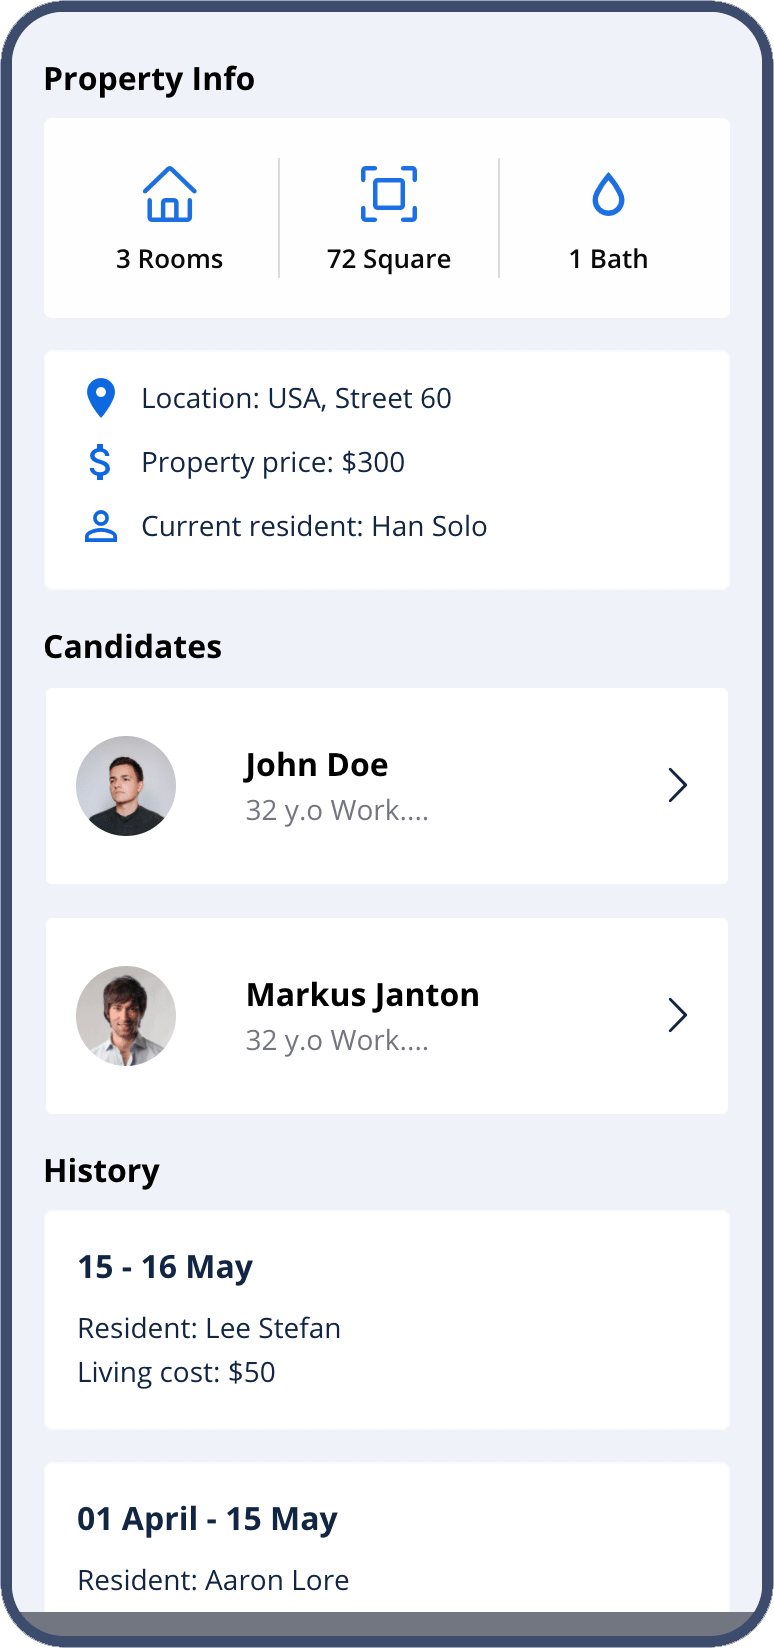 mobile app for real estate - property info